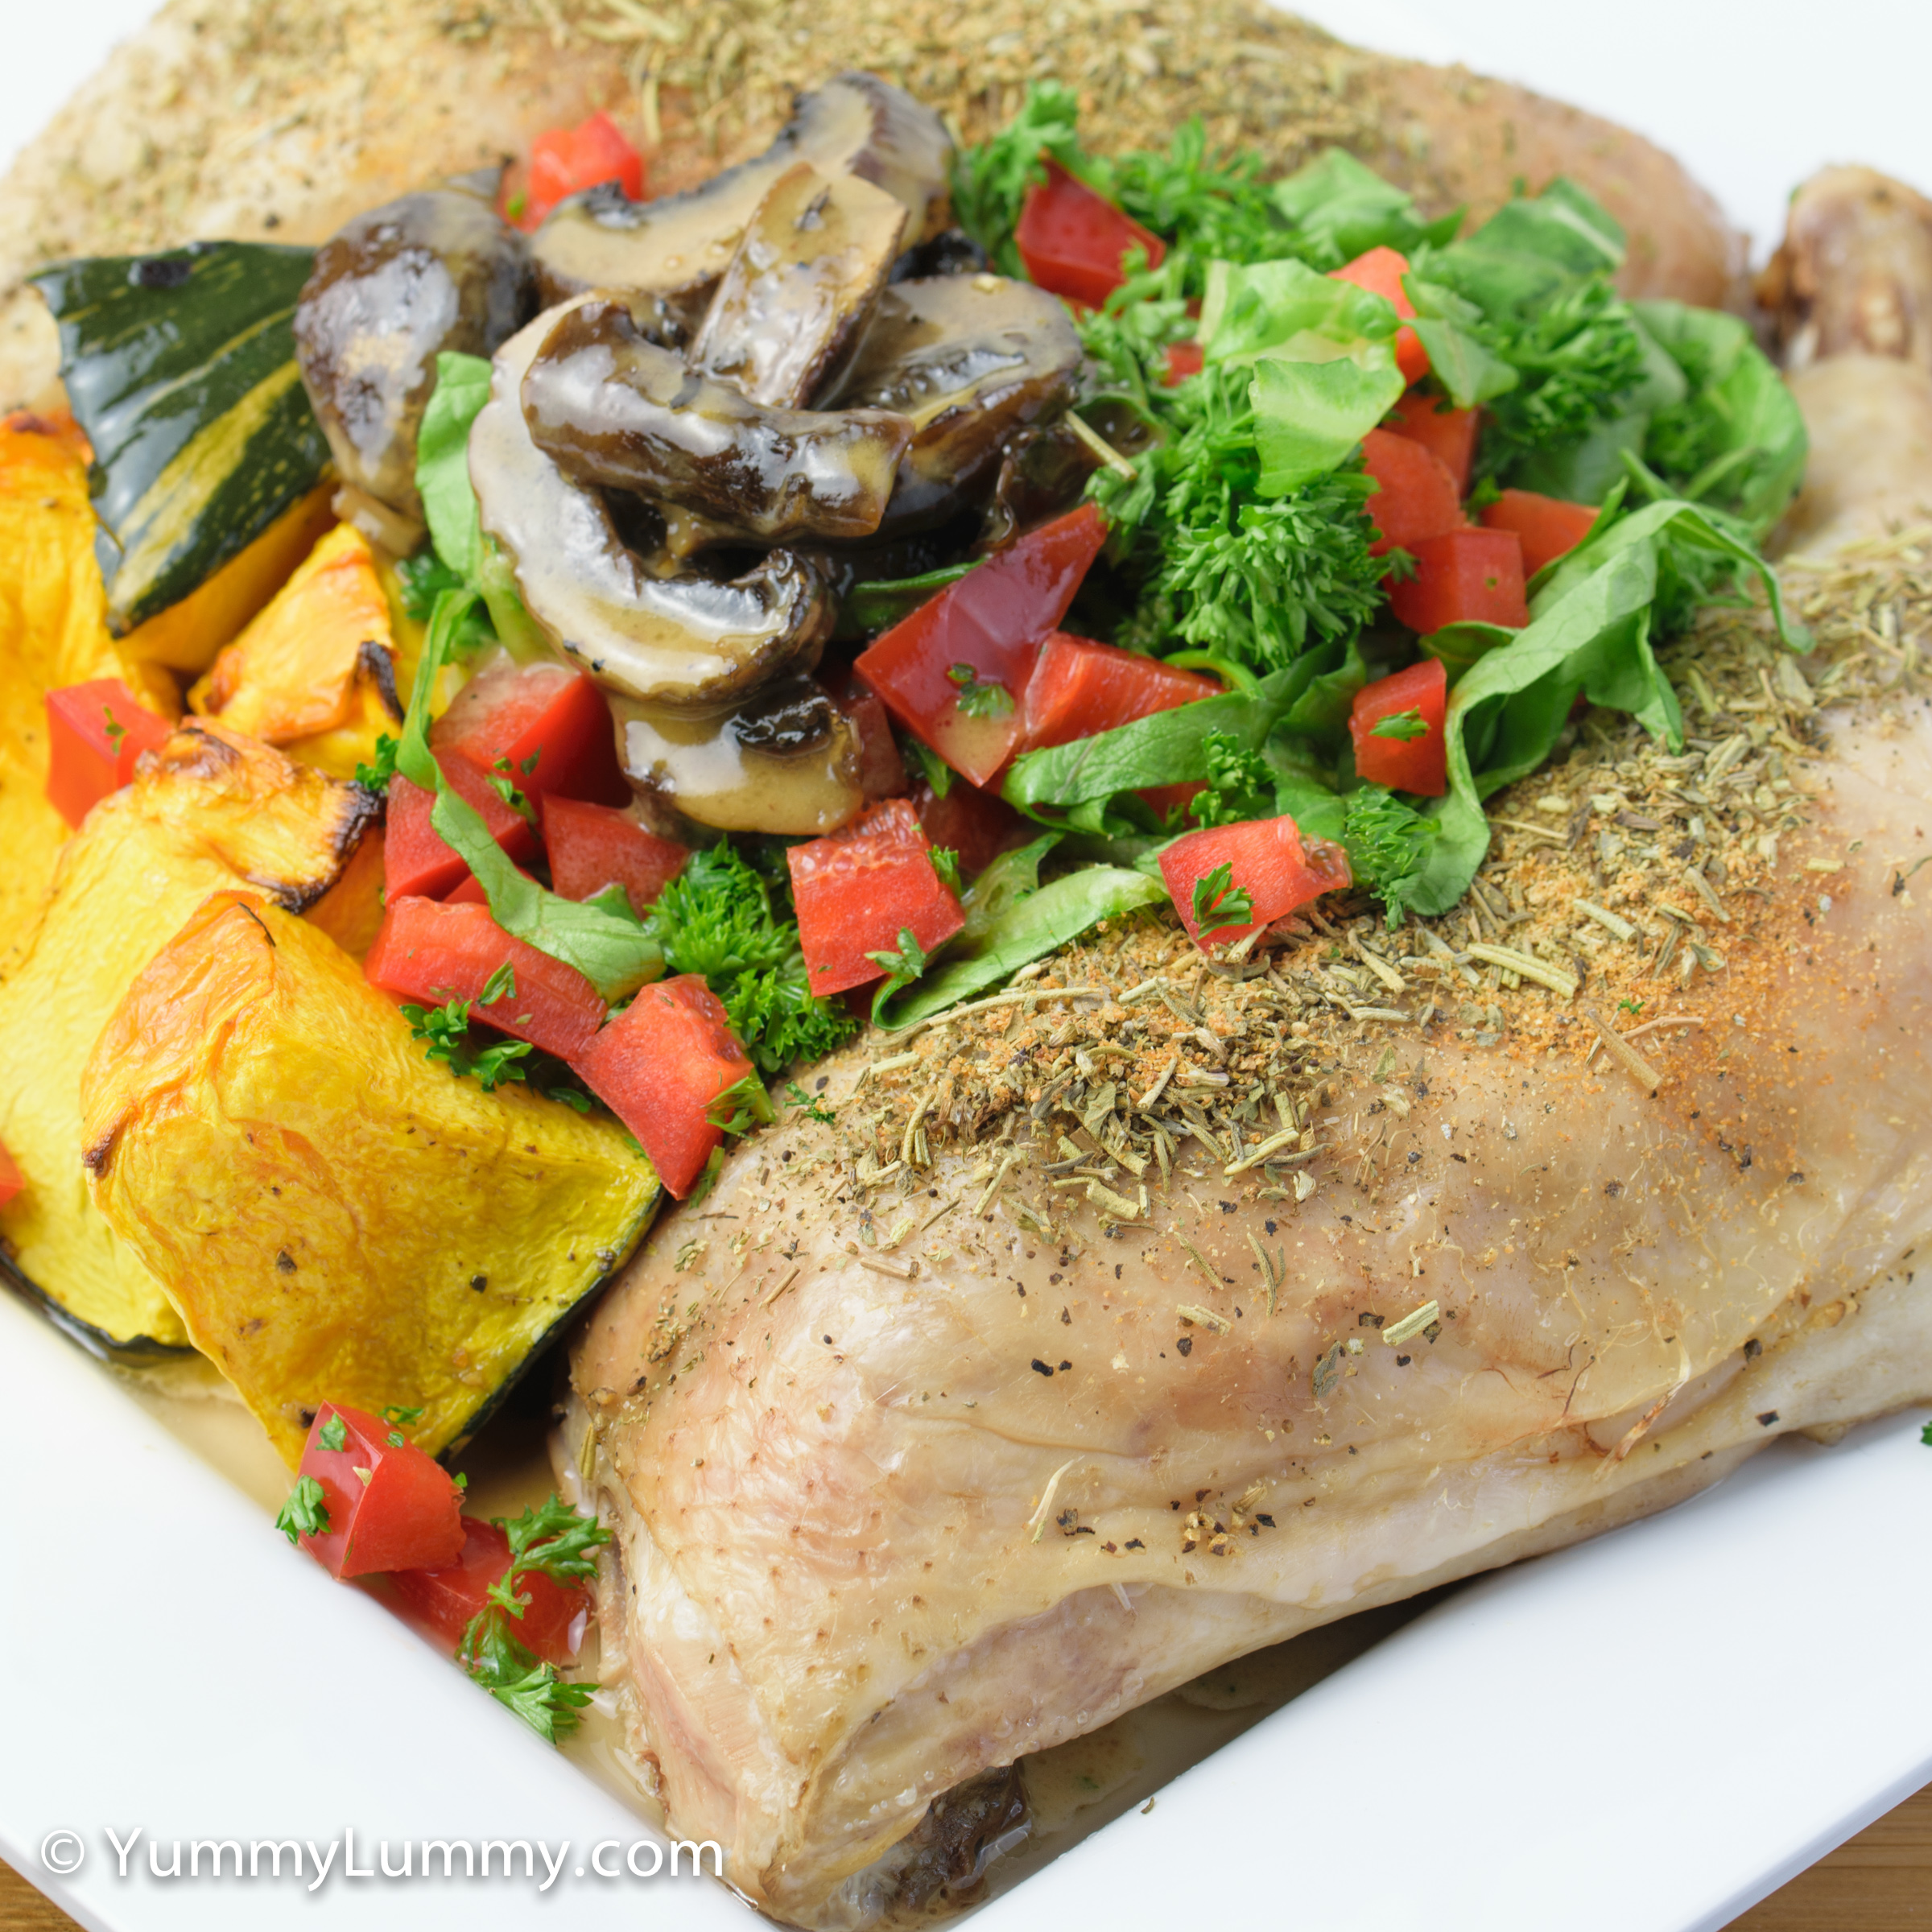 Roast Chicken Maryland with pumpkin and mushrooms for dinner